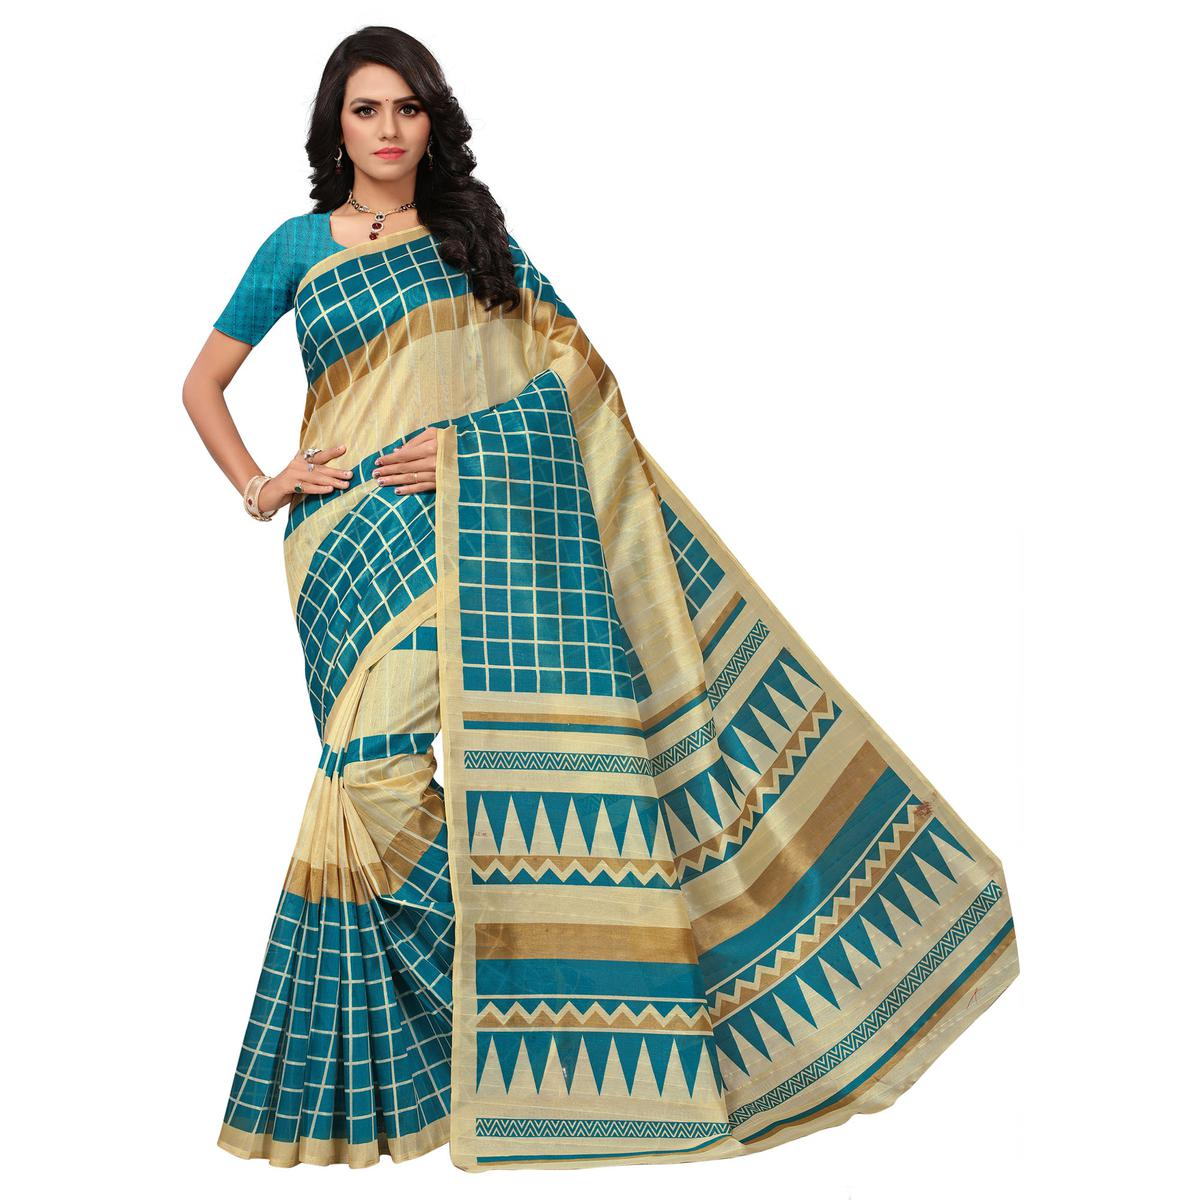 Awesome Beige-Turquoise Blue Colored Printed Bhagalpuri Silk Saree